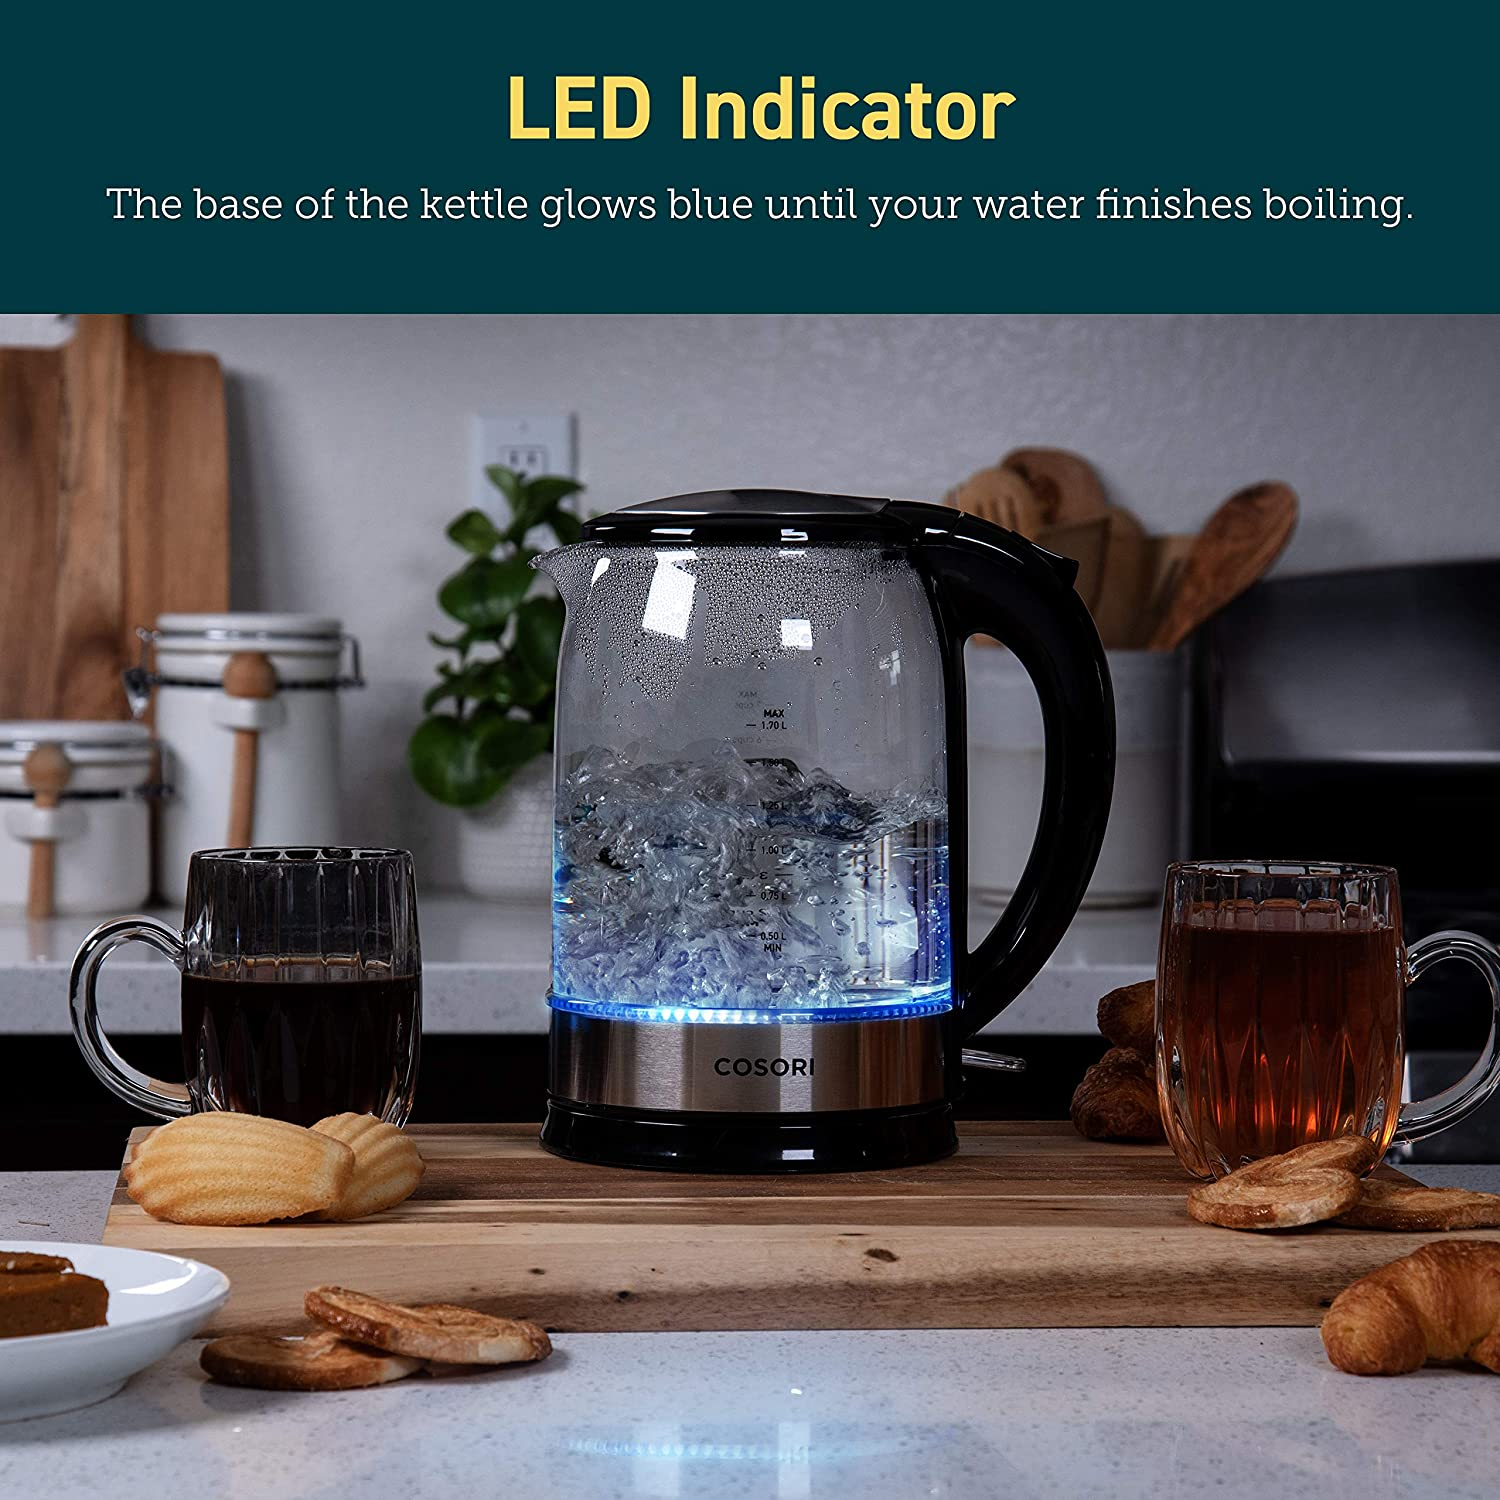 COSORI Electric Kettle Glass Hot Water Boiler & Tea Heater with LED Indicator Inner Lid & Bottom, Auto Shut-Off&Boil-Dry Protection, BPA Free, 1.7L, Black: Kitchen & Dining